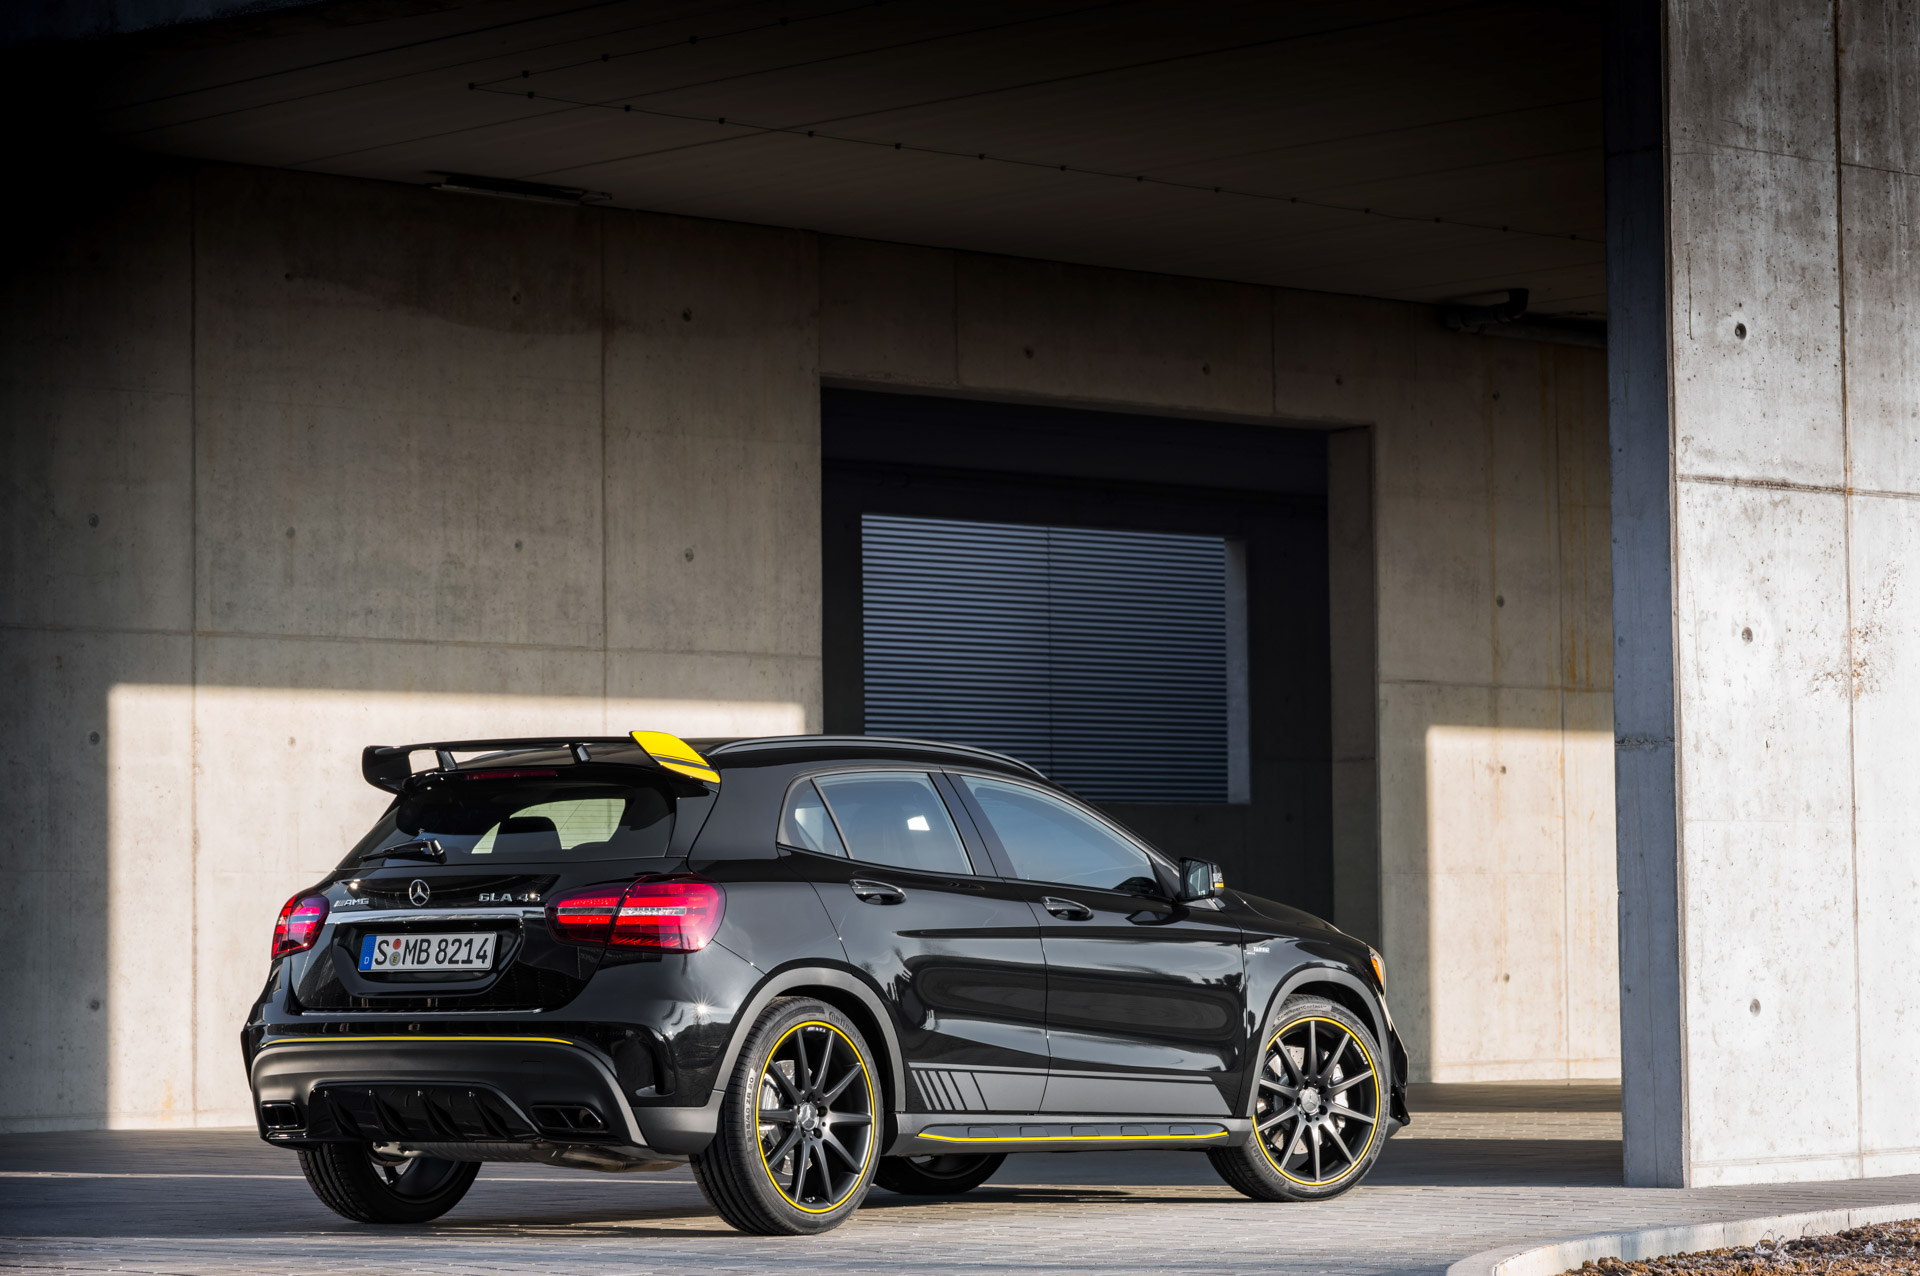 Mercedes-Benz AMG GLA 45 4MATIC Yellow Night Edition, cosmosschwarz ;Kraftstoffverbrauch kombiniert: 7,4 l/100 km, CO2-Emissionen kombiniert: 172 g/km Mercedes-Benz AMG GLA 45 4MATIC Yellow Night Edition, cosmos black; Fuel consumption combined:  7.4 l/100 km; Combined CO2 emissions: 172 g/km